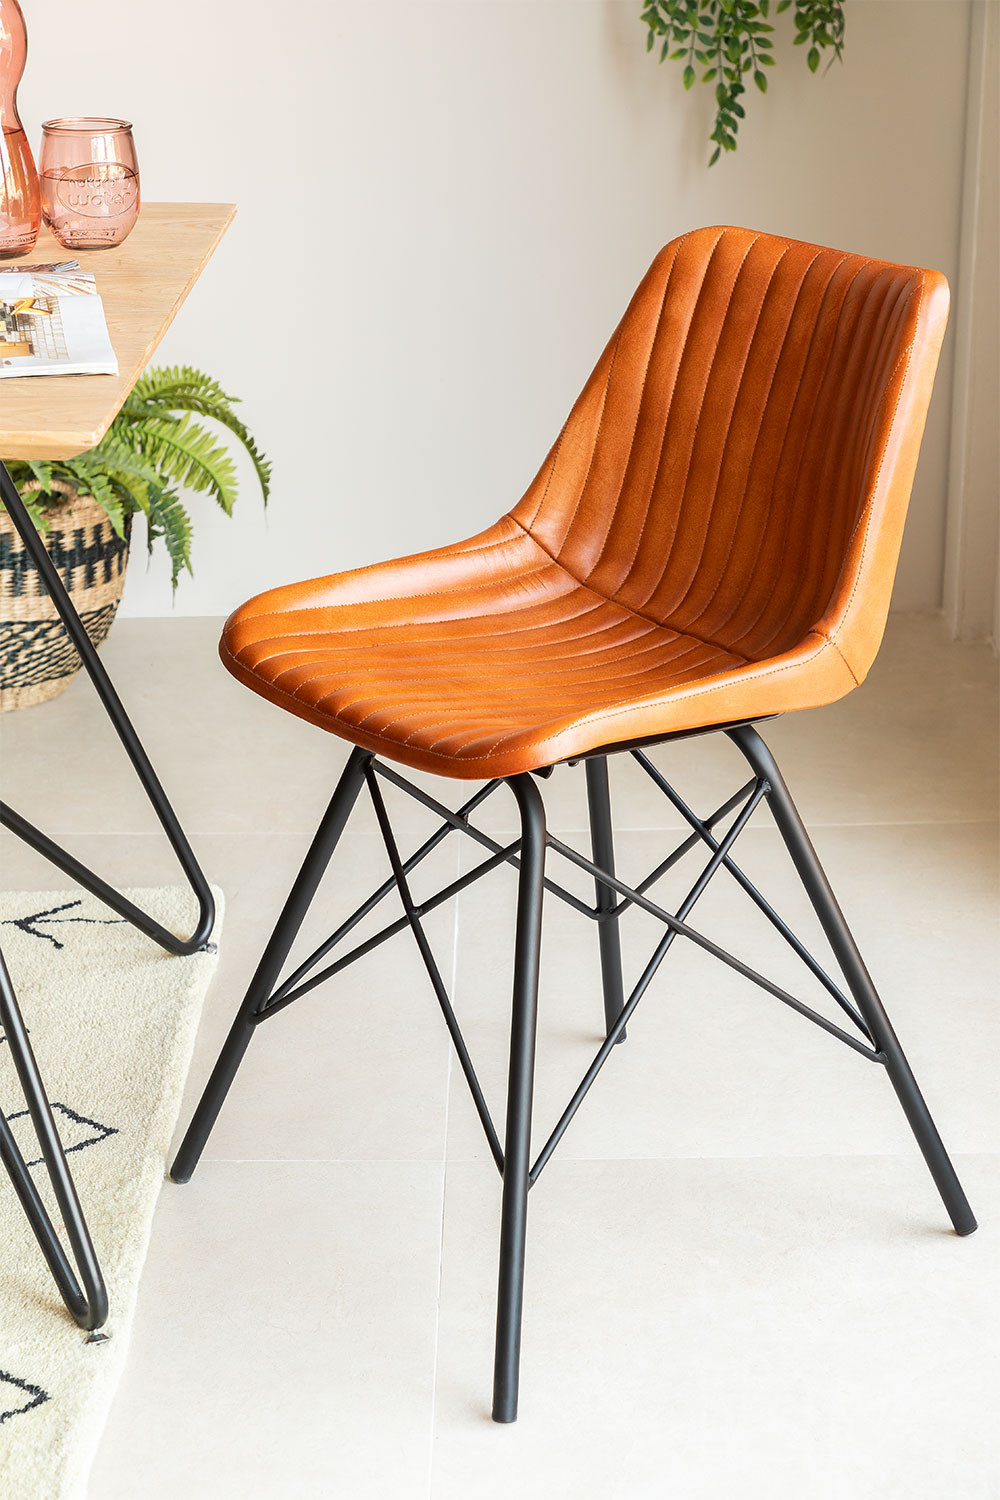 Leather Chair Kubyh, gallery image 1